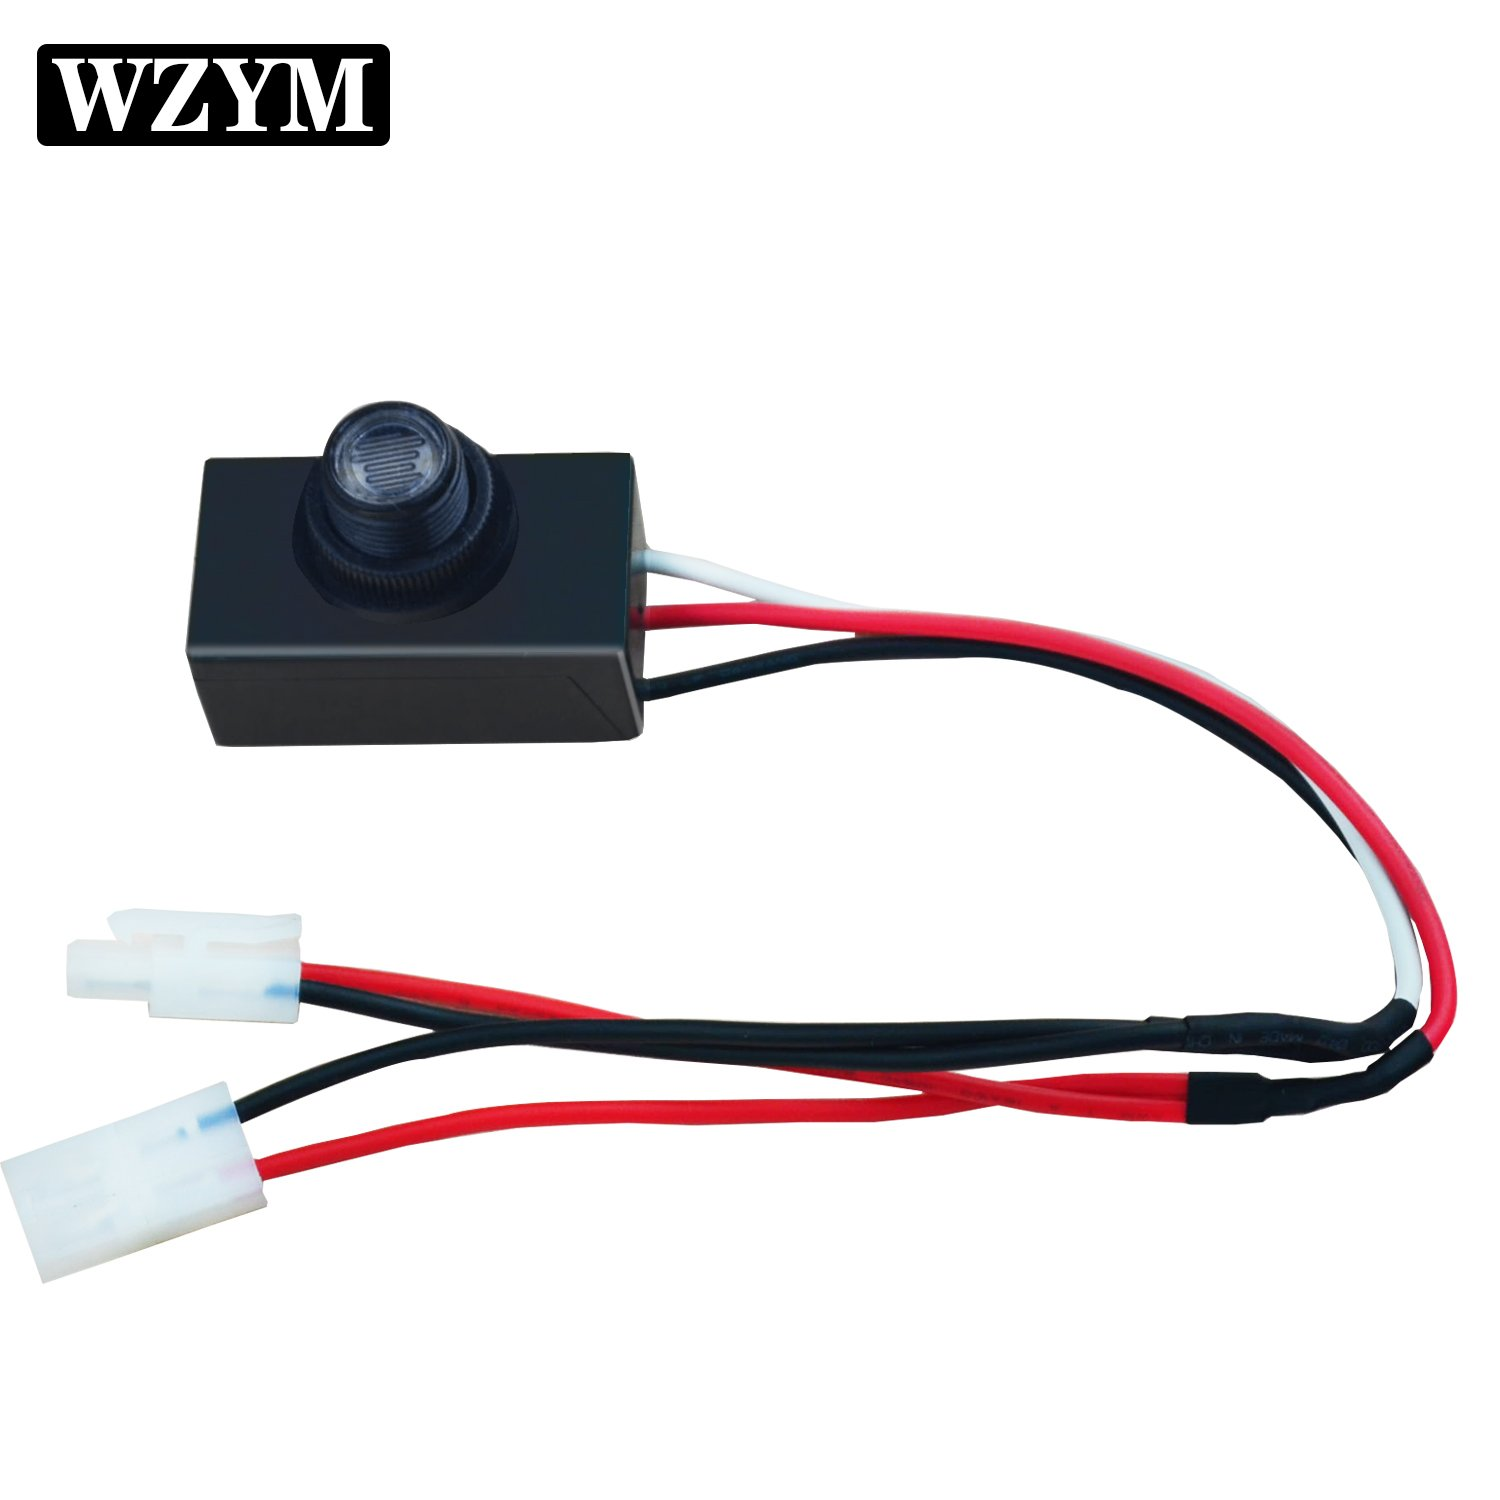 Wyzm 120 277v Led Photocell Dusk To Dawn Outdoor Swivel Cell Light Wiring Photosensorphotocellpng Control Sensor